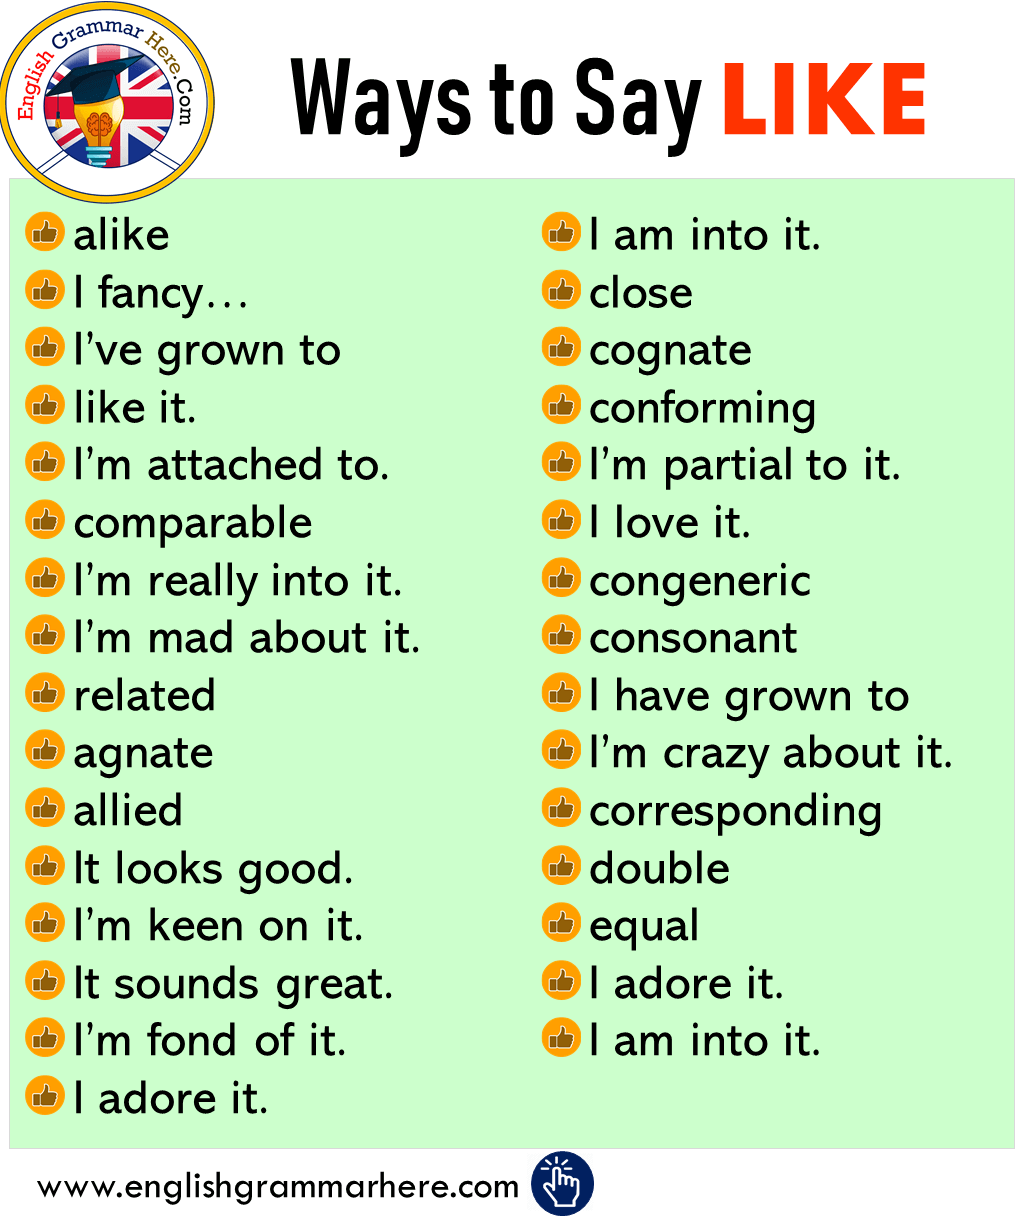 Other Ways to Say LIKE in English